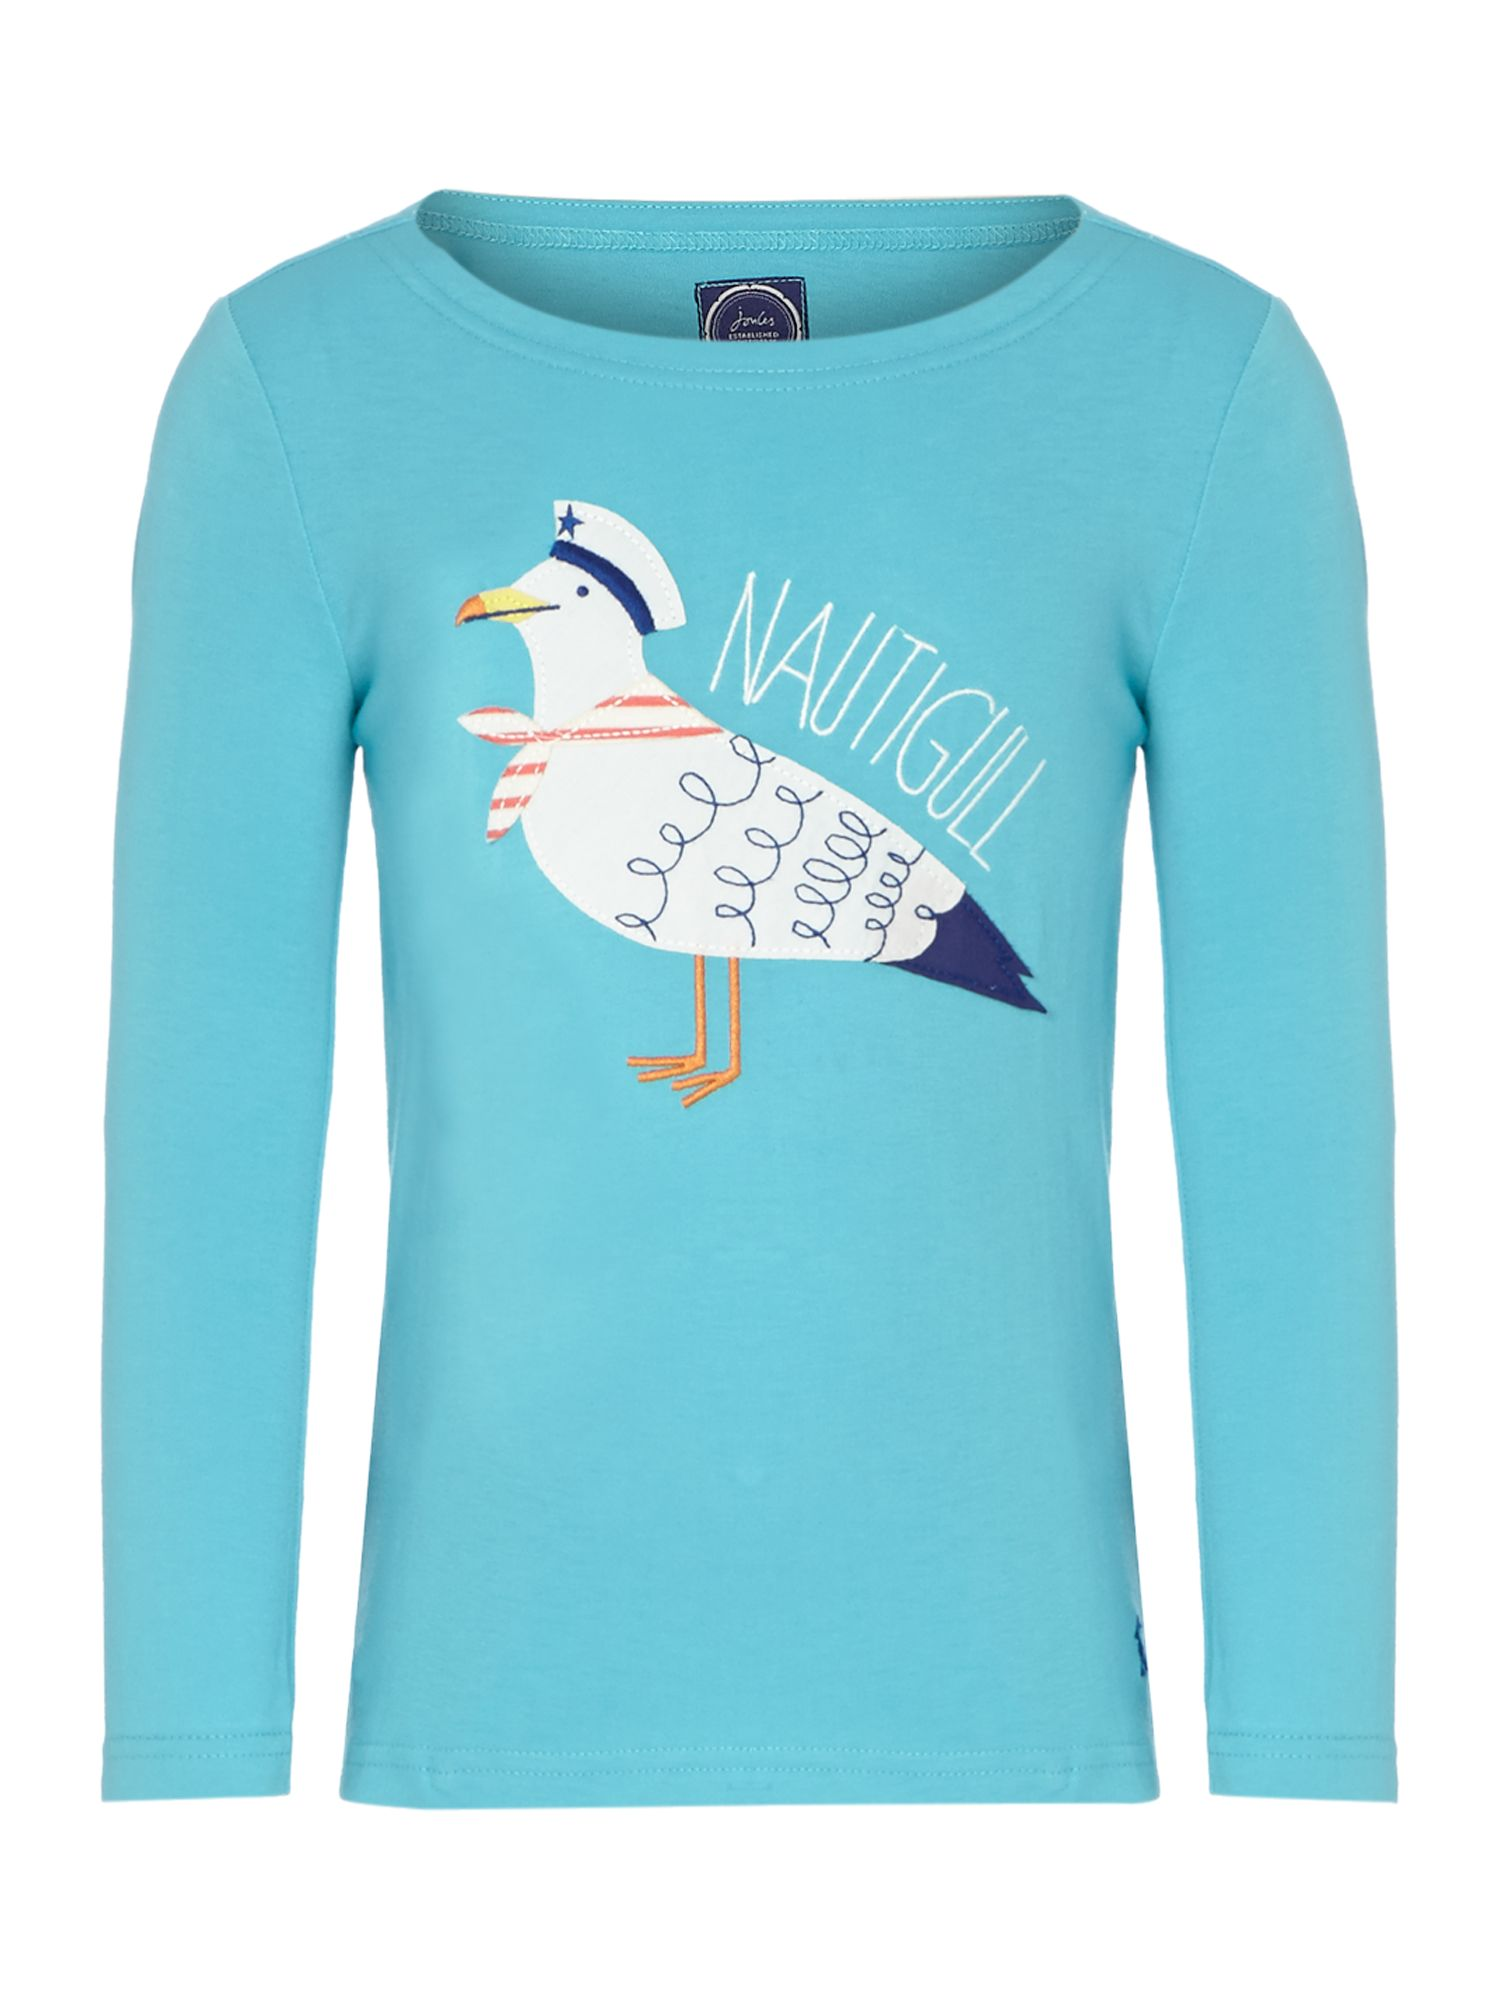 Girls seagul applique t-shirt